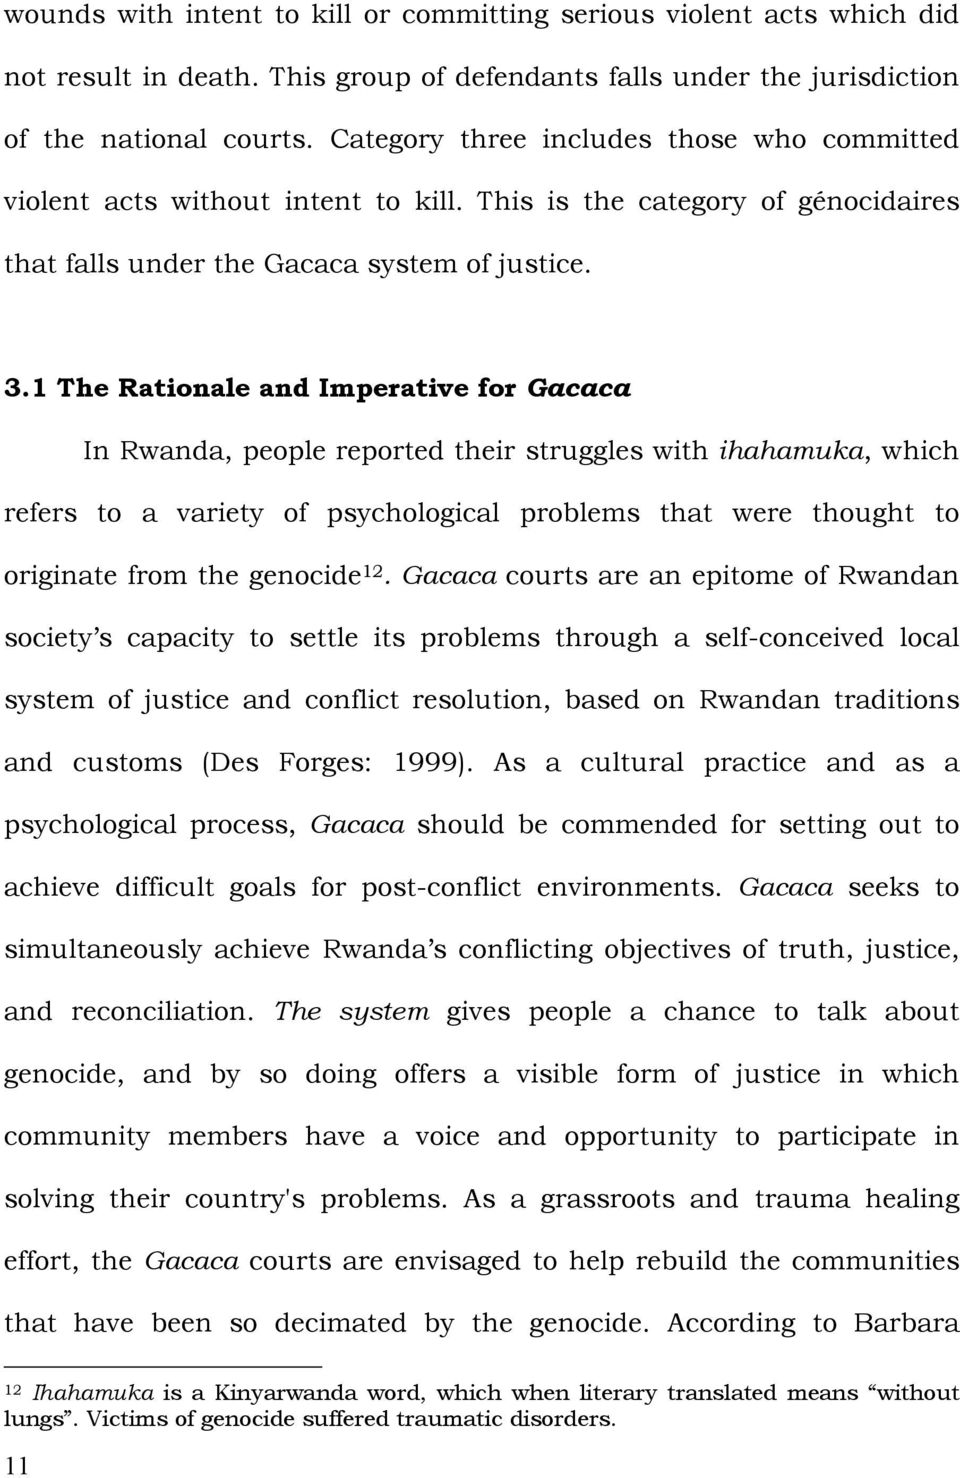 1 The Rationale and Imperative for Gacaca In Rwanda, people reported their struggles with ihahamuka, which refers to a variety of psychological problems that were thought to originate from the